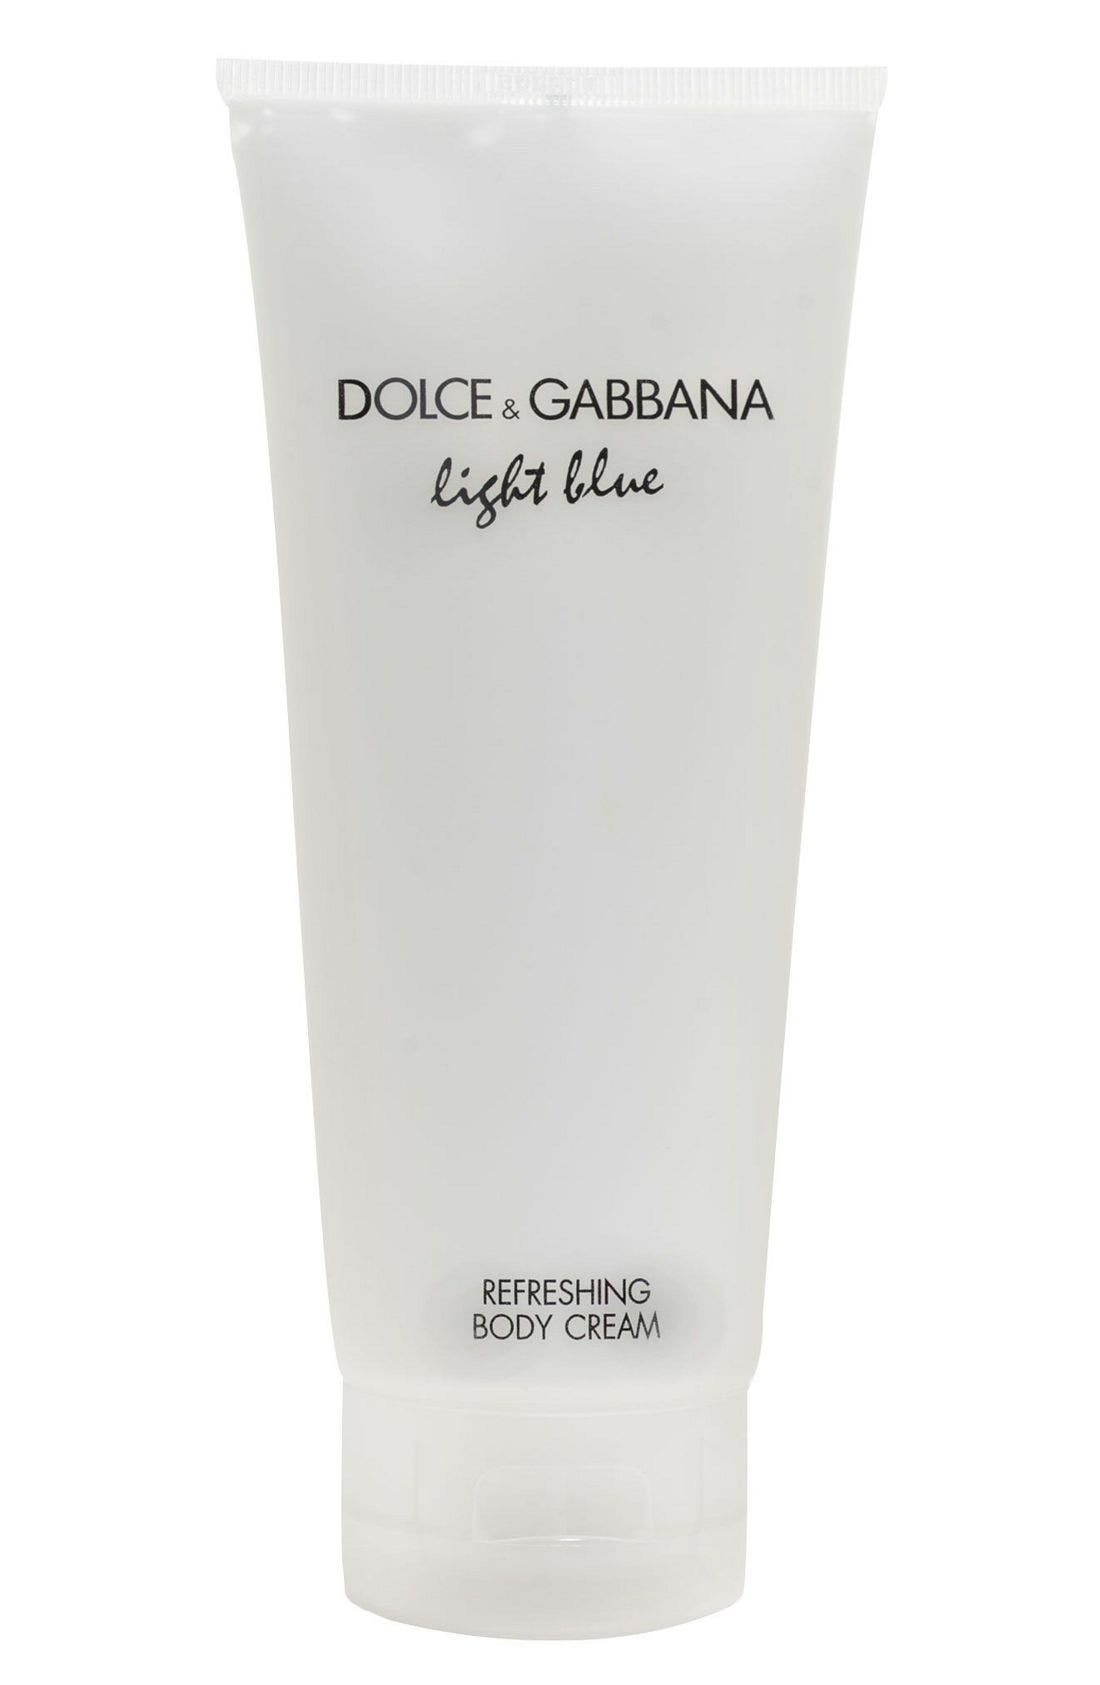 Dolce&Gabbana Beauty 'Light Blue' Refreshing Body Cream